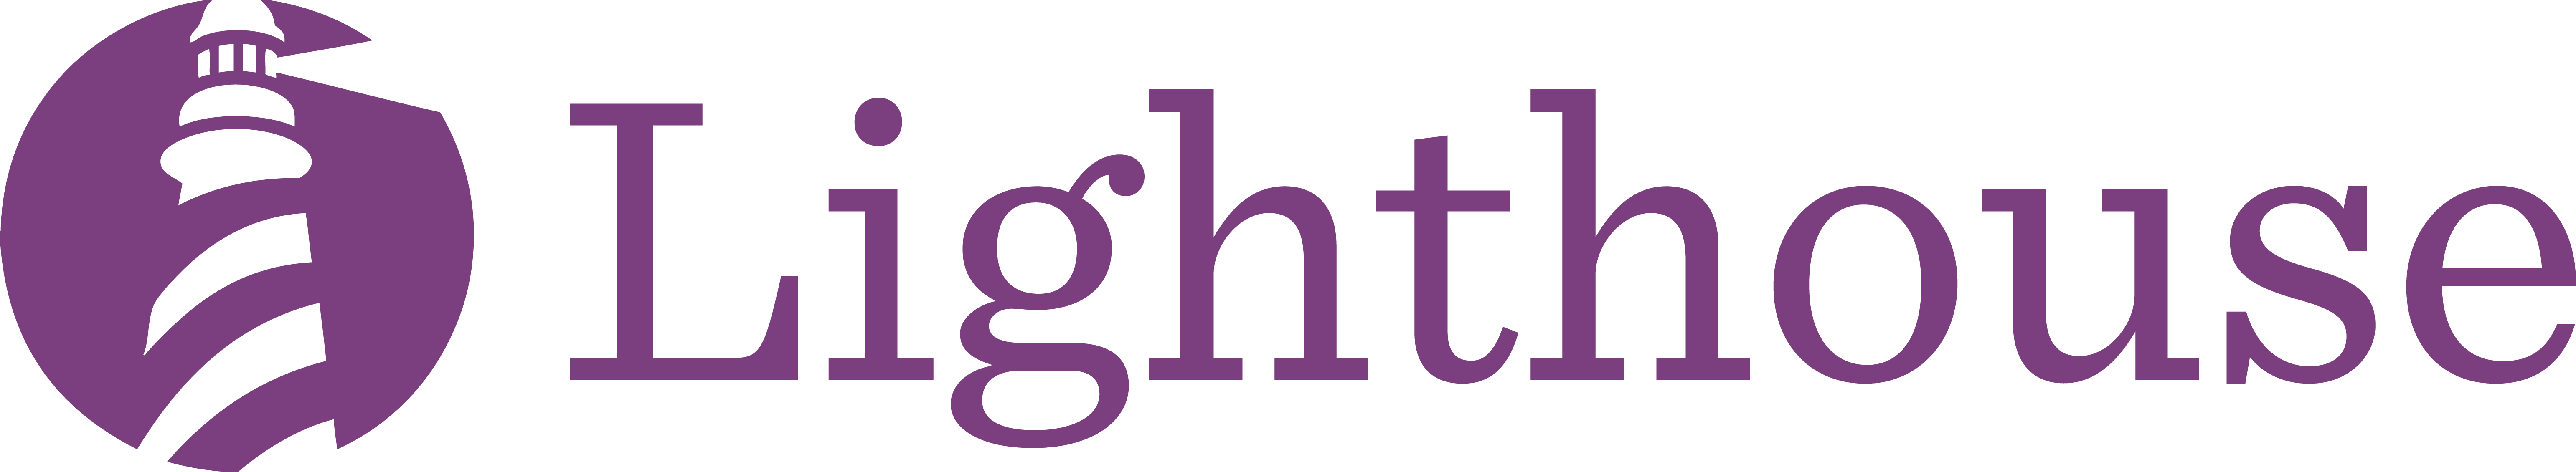 Lighthouse logo in Purple